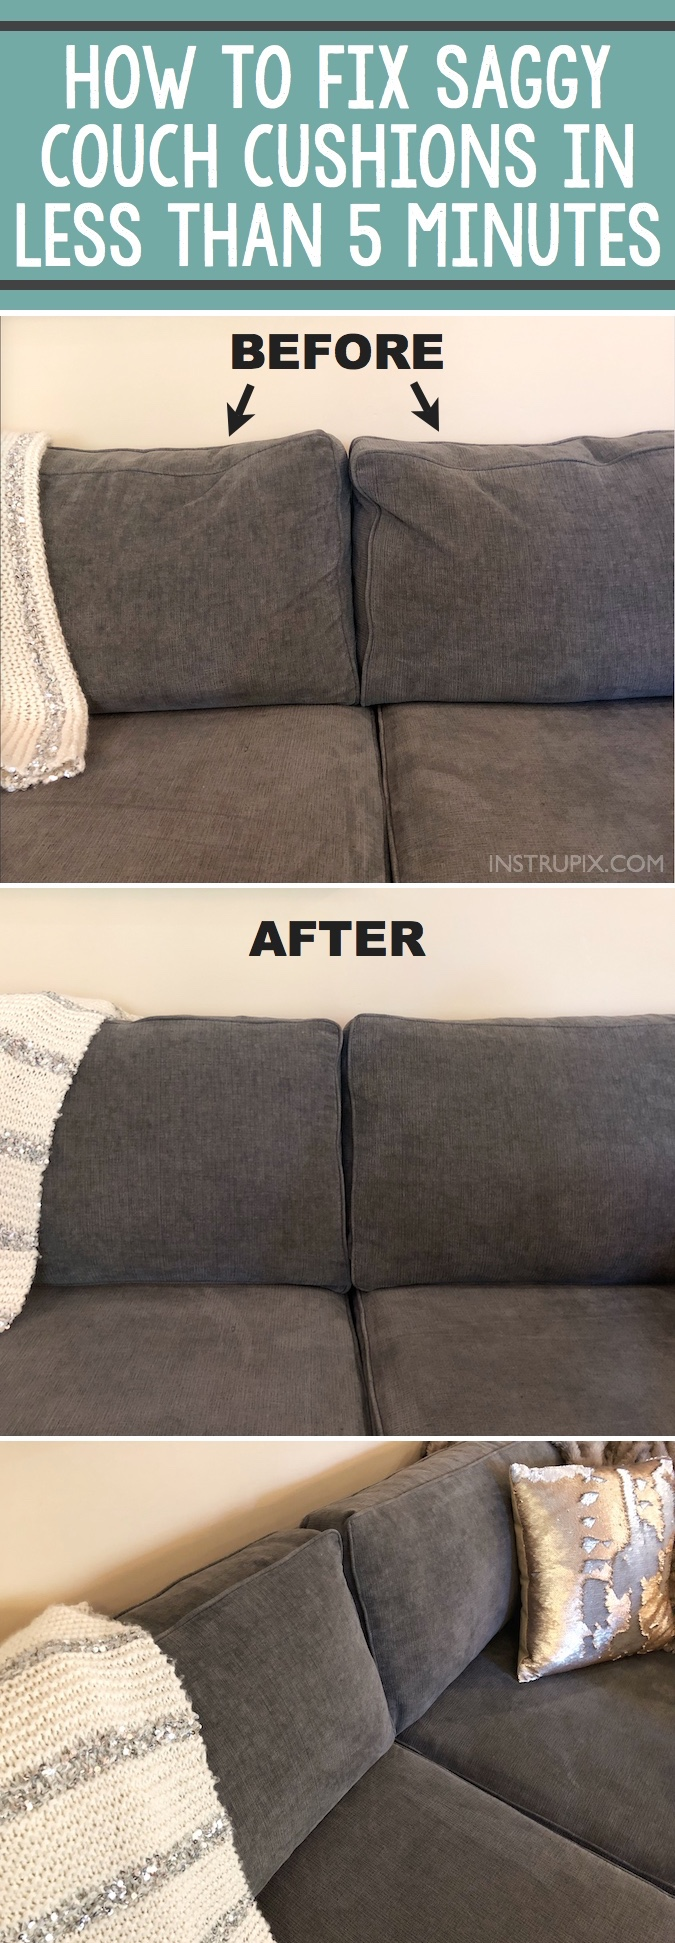 Tip How To Fix Saggy Couch Cushions A Life Hack Everyone